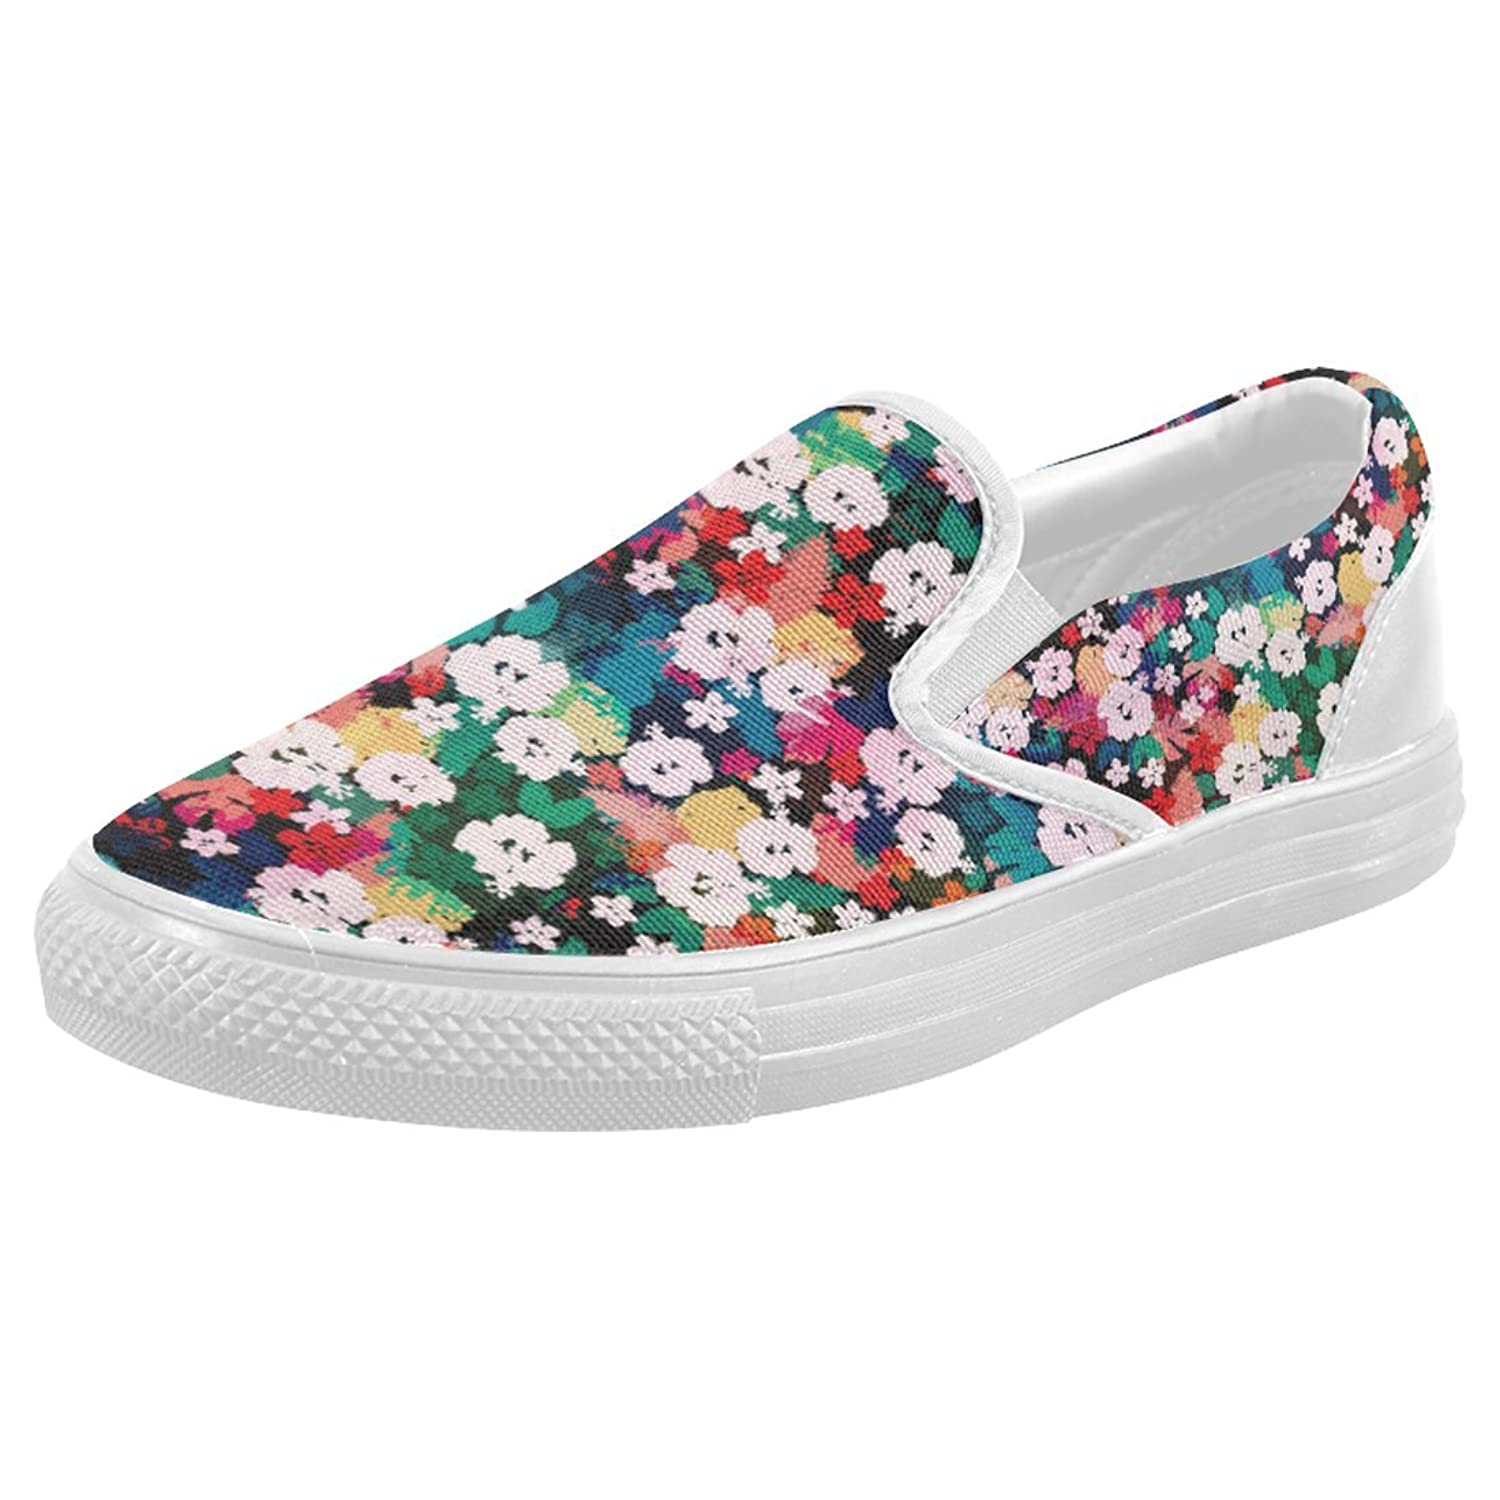 Womens Slip-on Loafer White Hawaiian Hibiscus Flowers Fashion Sneaker Casual Flat Walking Shoes Round Toe